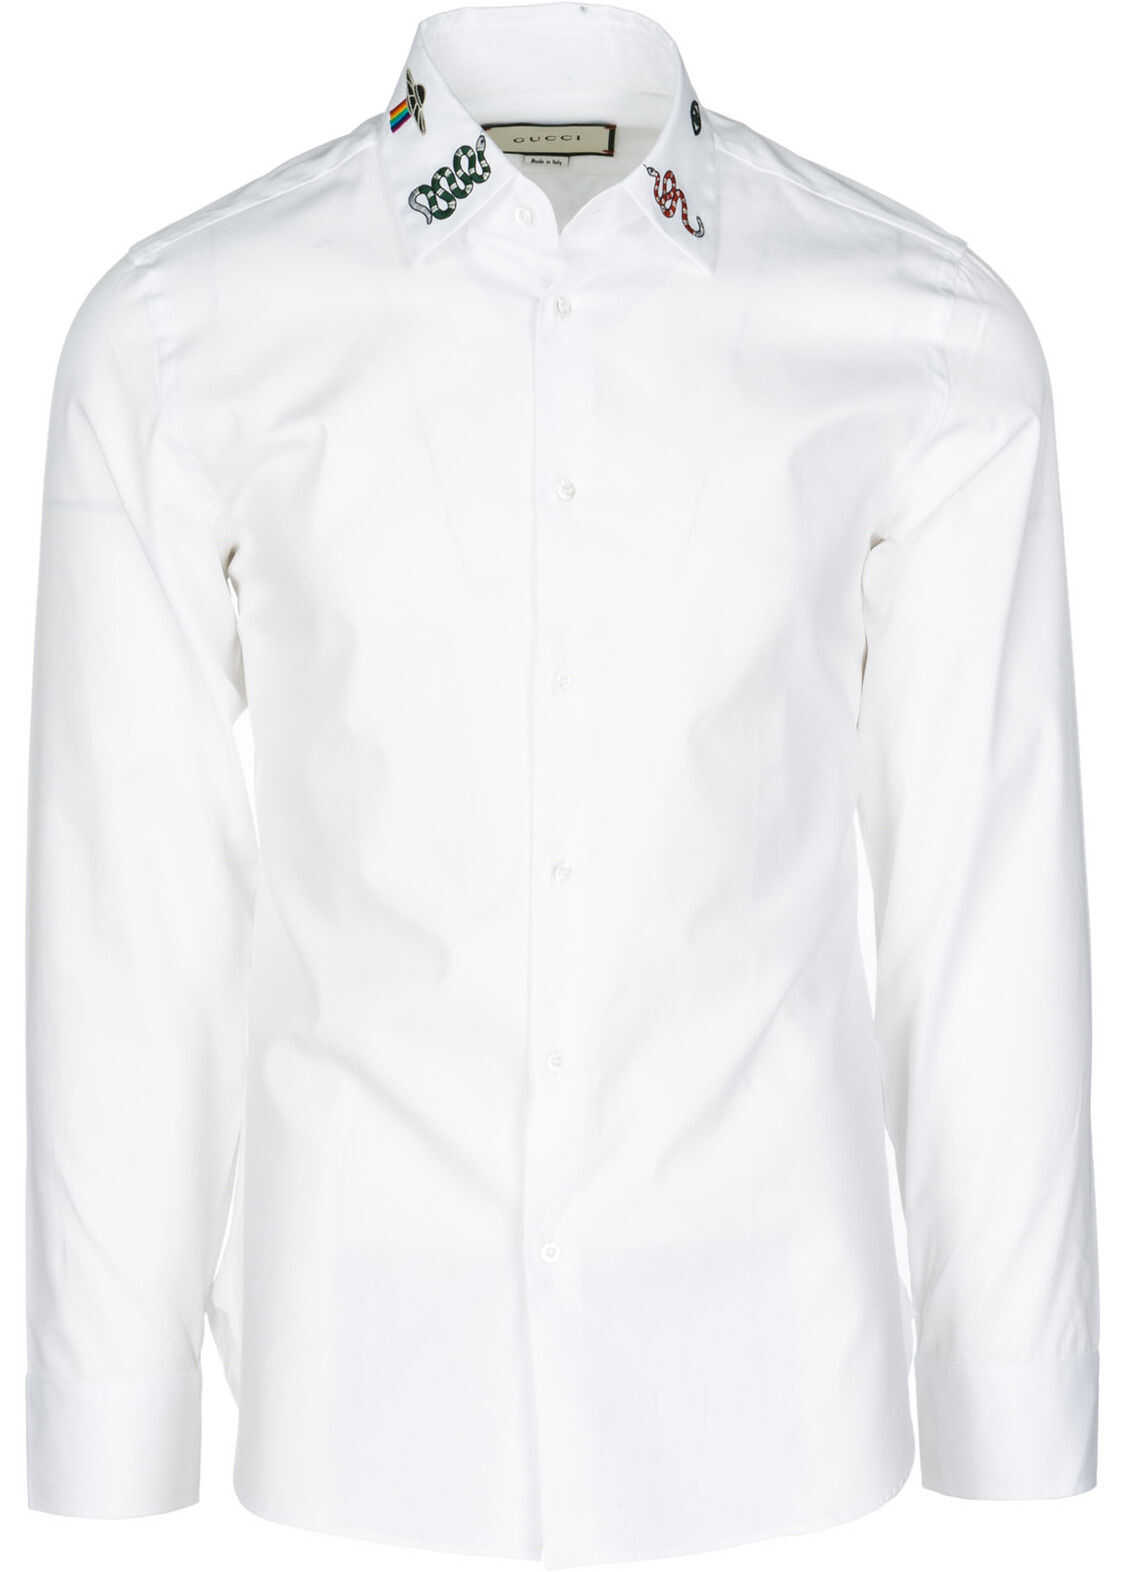 Gucci Dress Shirt White